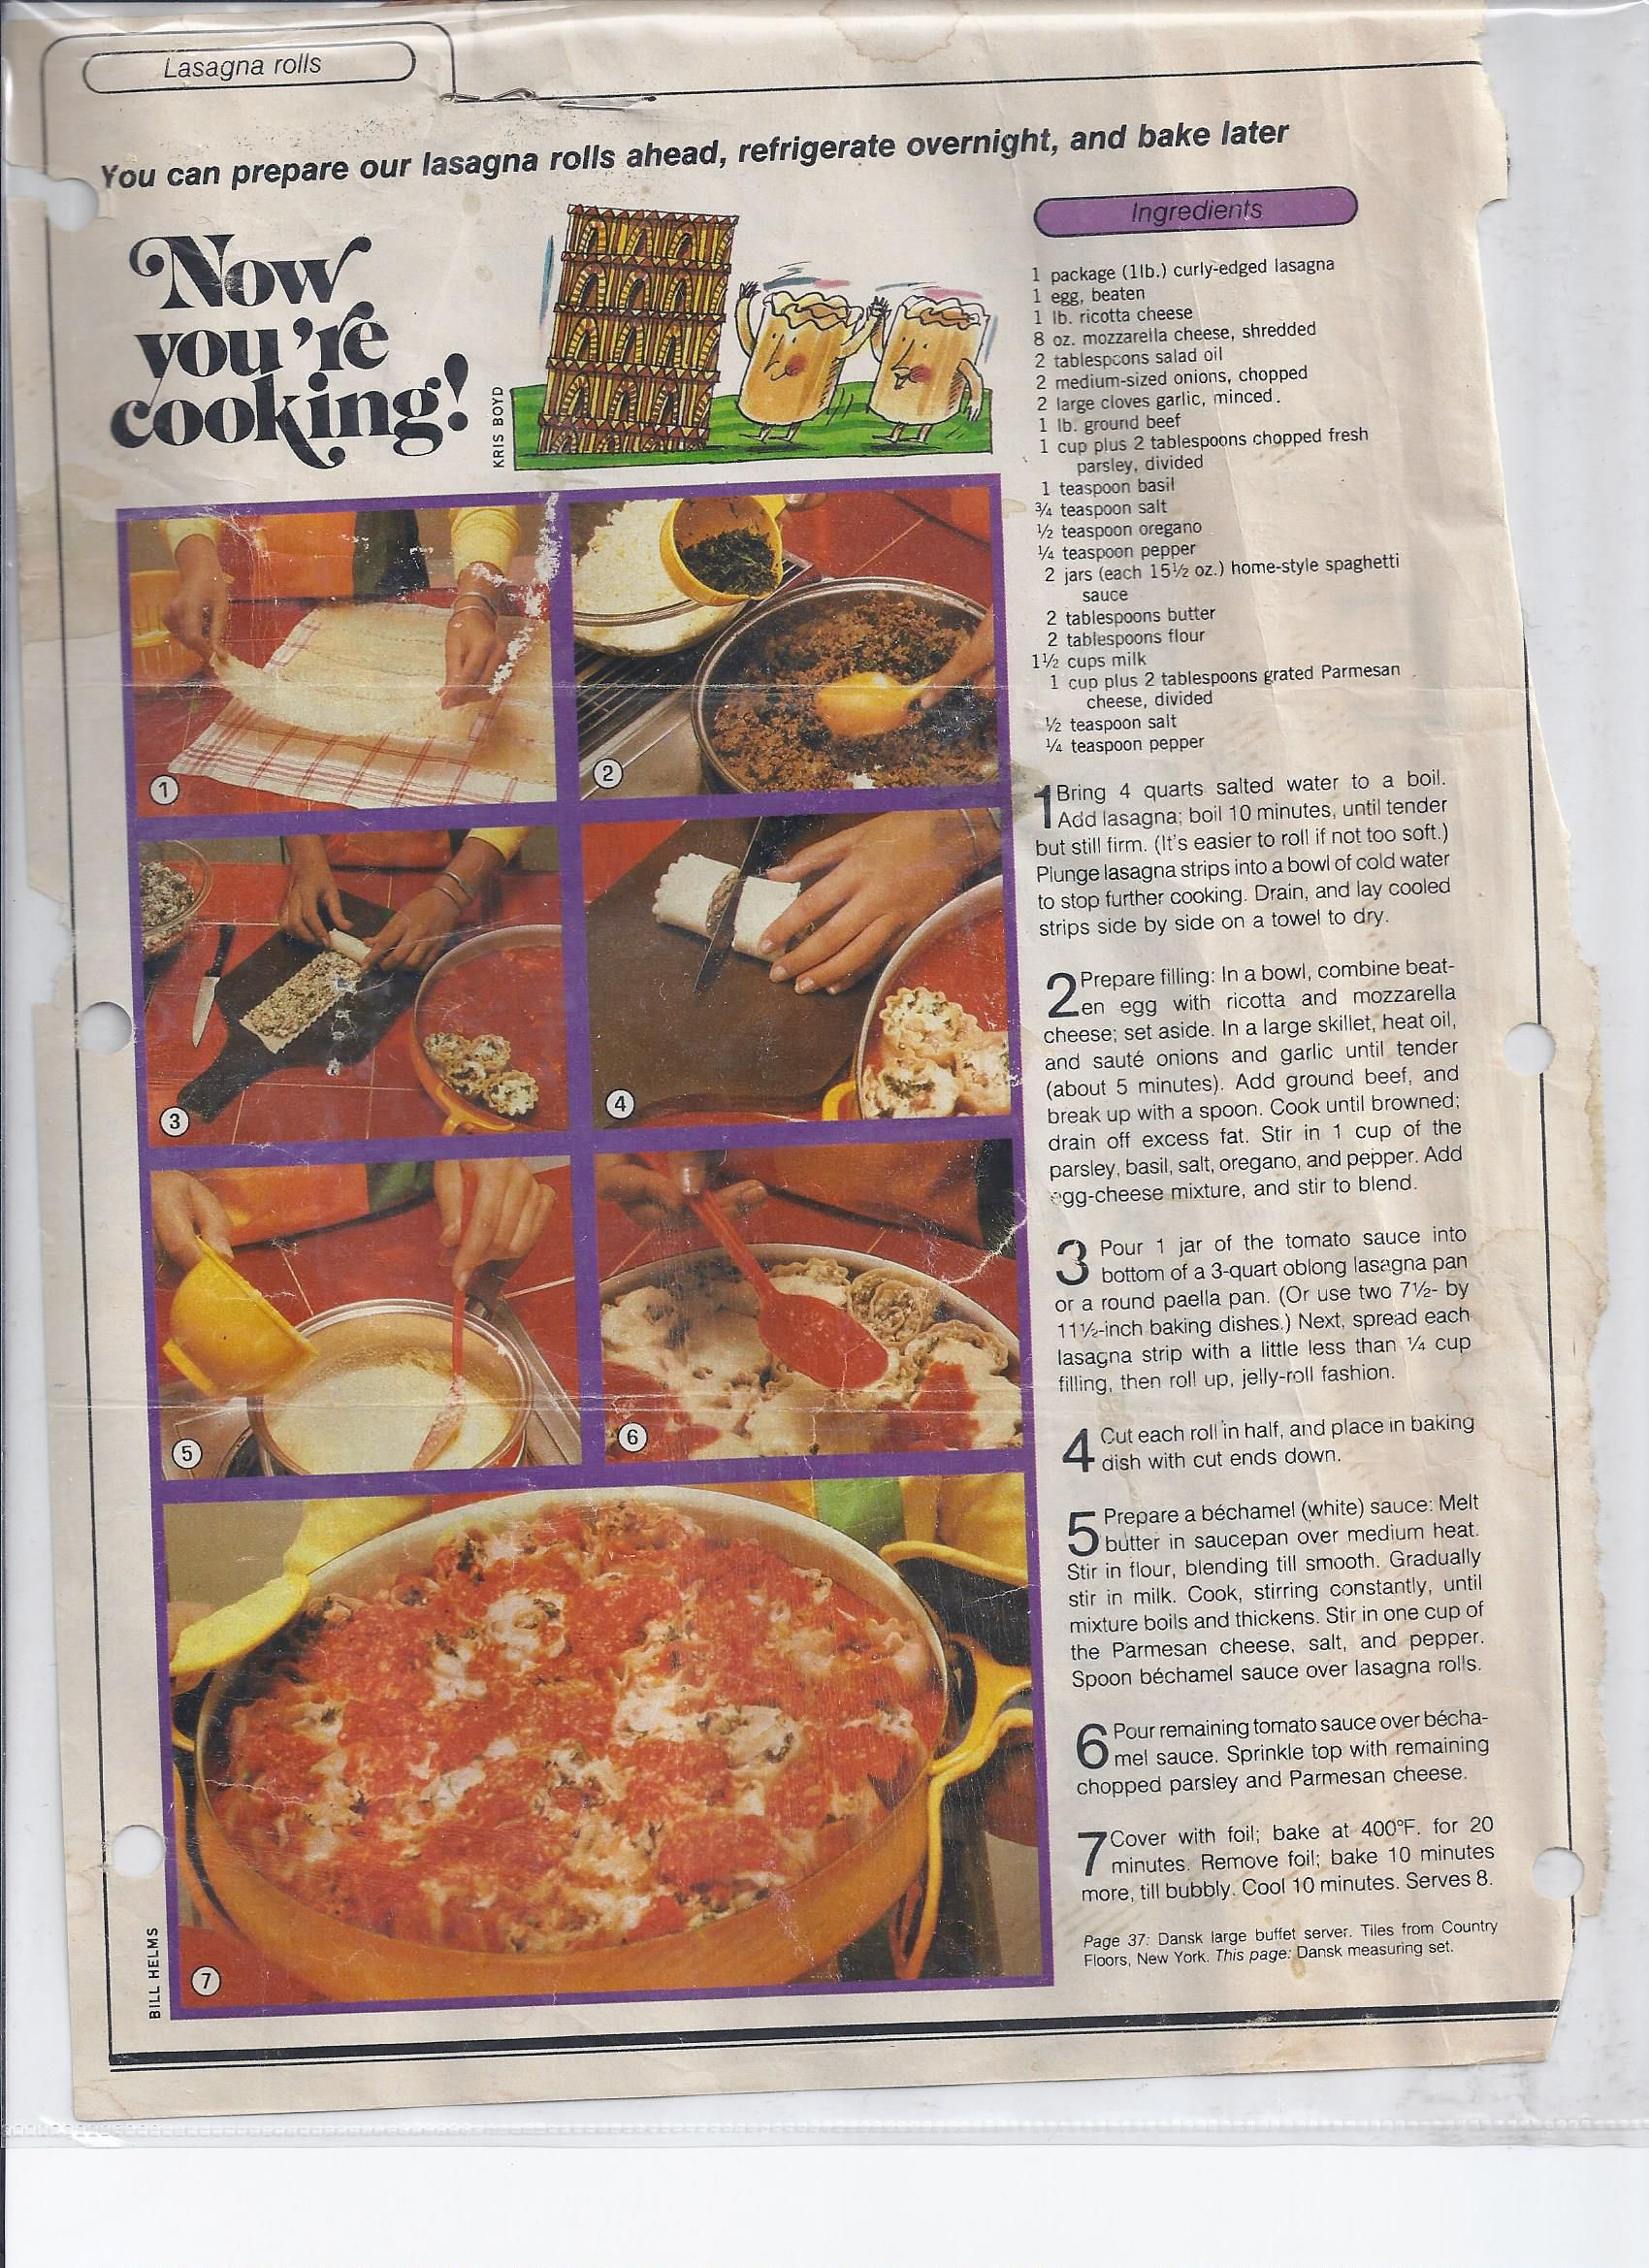 I can't believe someone had this!  This exactly the article/recipe I used when I was 16 and first learned to make lasagna and have been making some version of this ever since.  Lasagna Rolls - Seventeen Magazine 1982